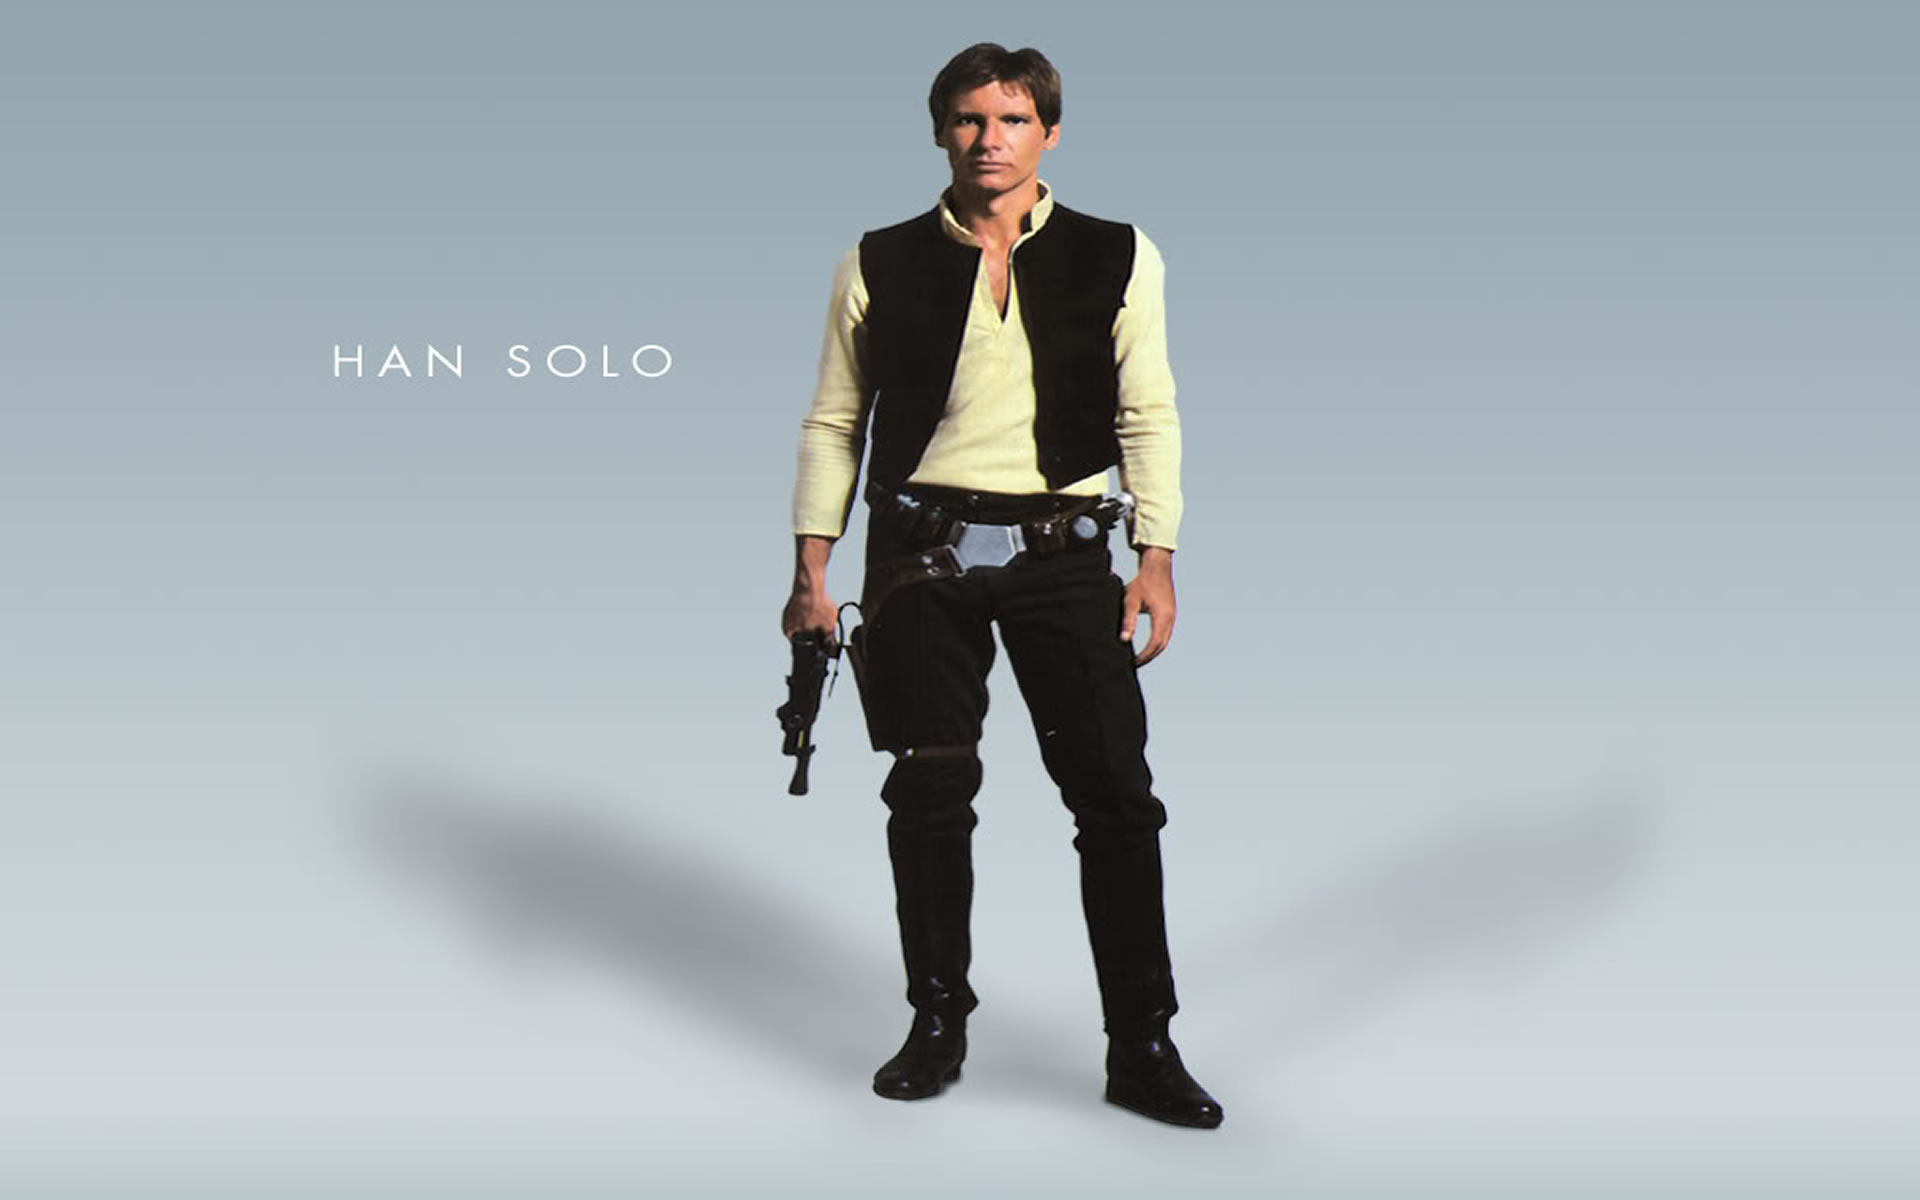 Wallpaper Star Wars. Han Solo